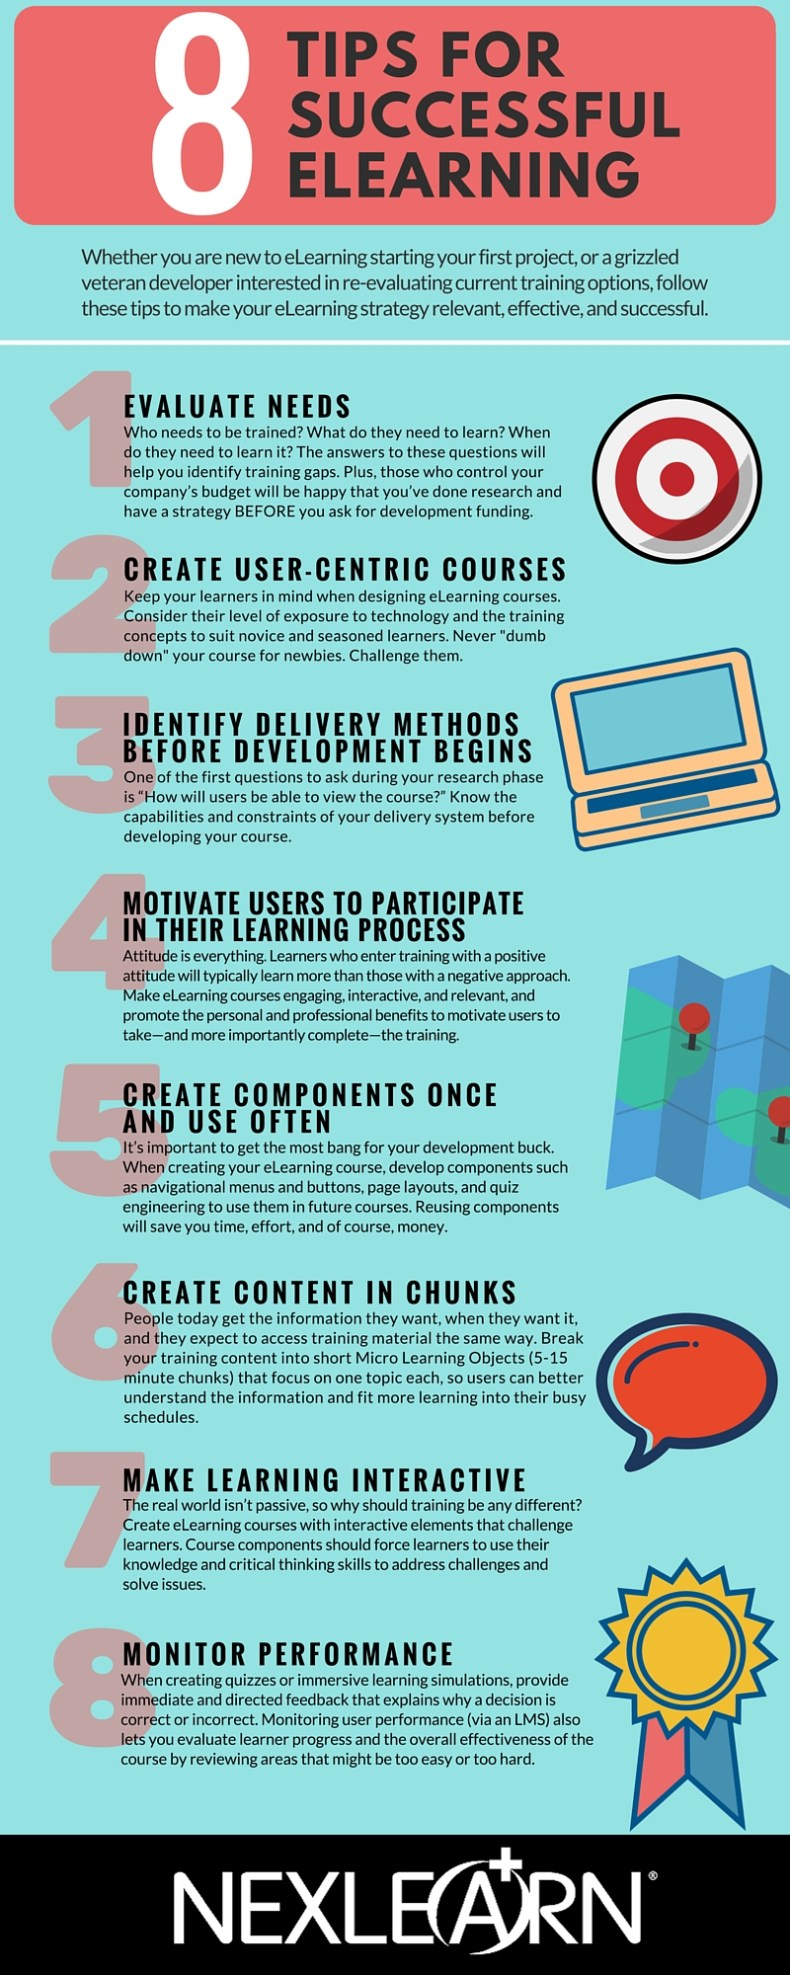 8 Tips For Elearning